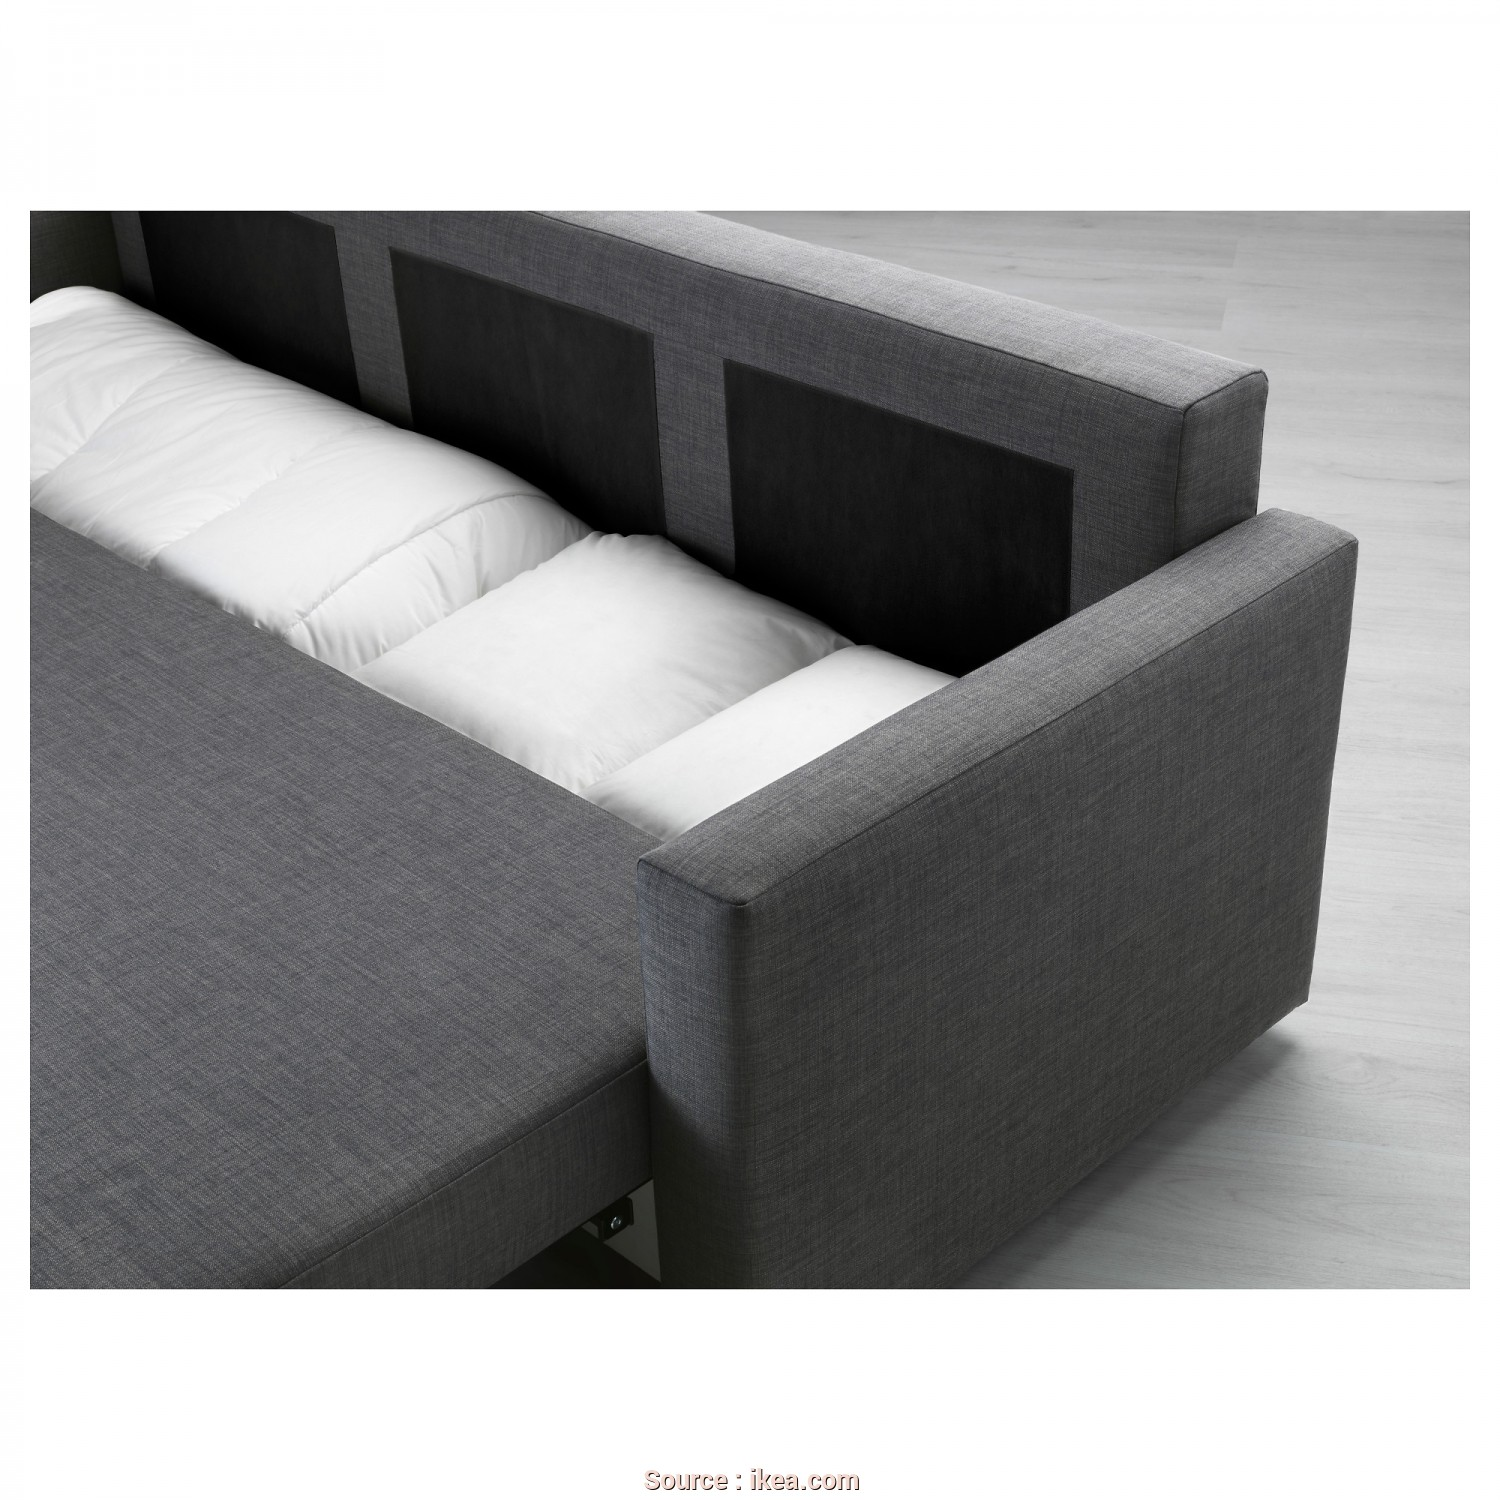 Futon Ikea Catalogo, Grande IKEA FRIHETEN Three-Seat Sofa-Bed Readily Converts Into A Bed